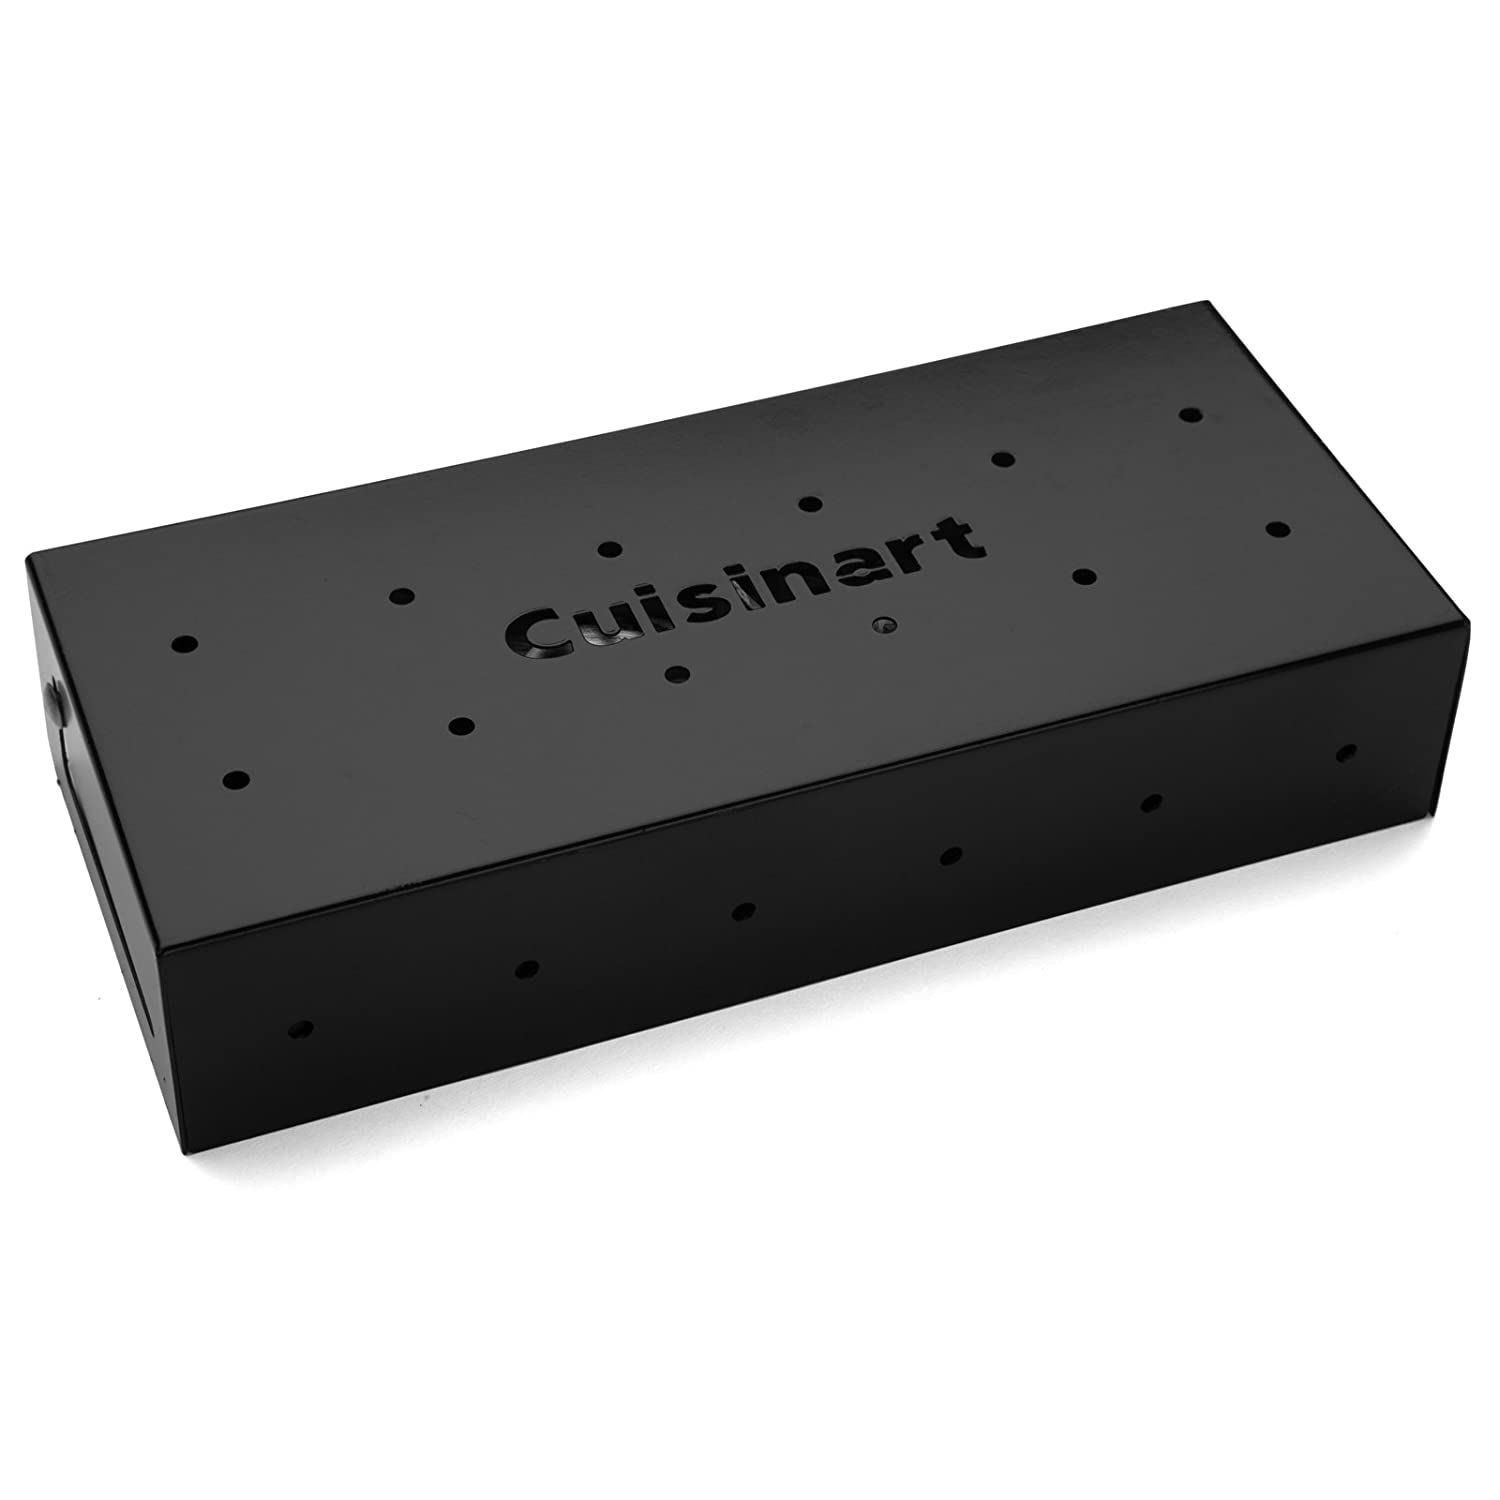 Cuisinart CSB-158 Smoke and Humidity Grill Box, Silver/Black